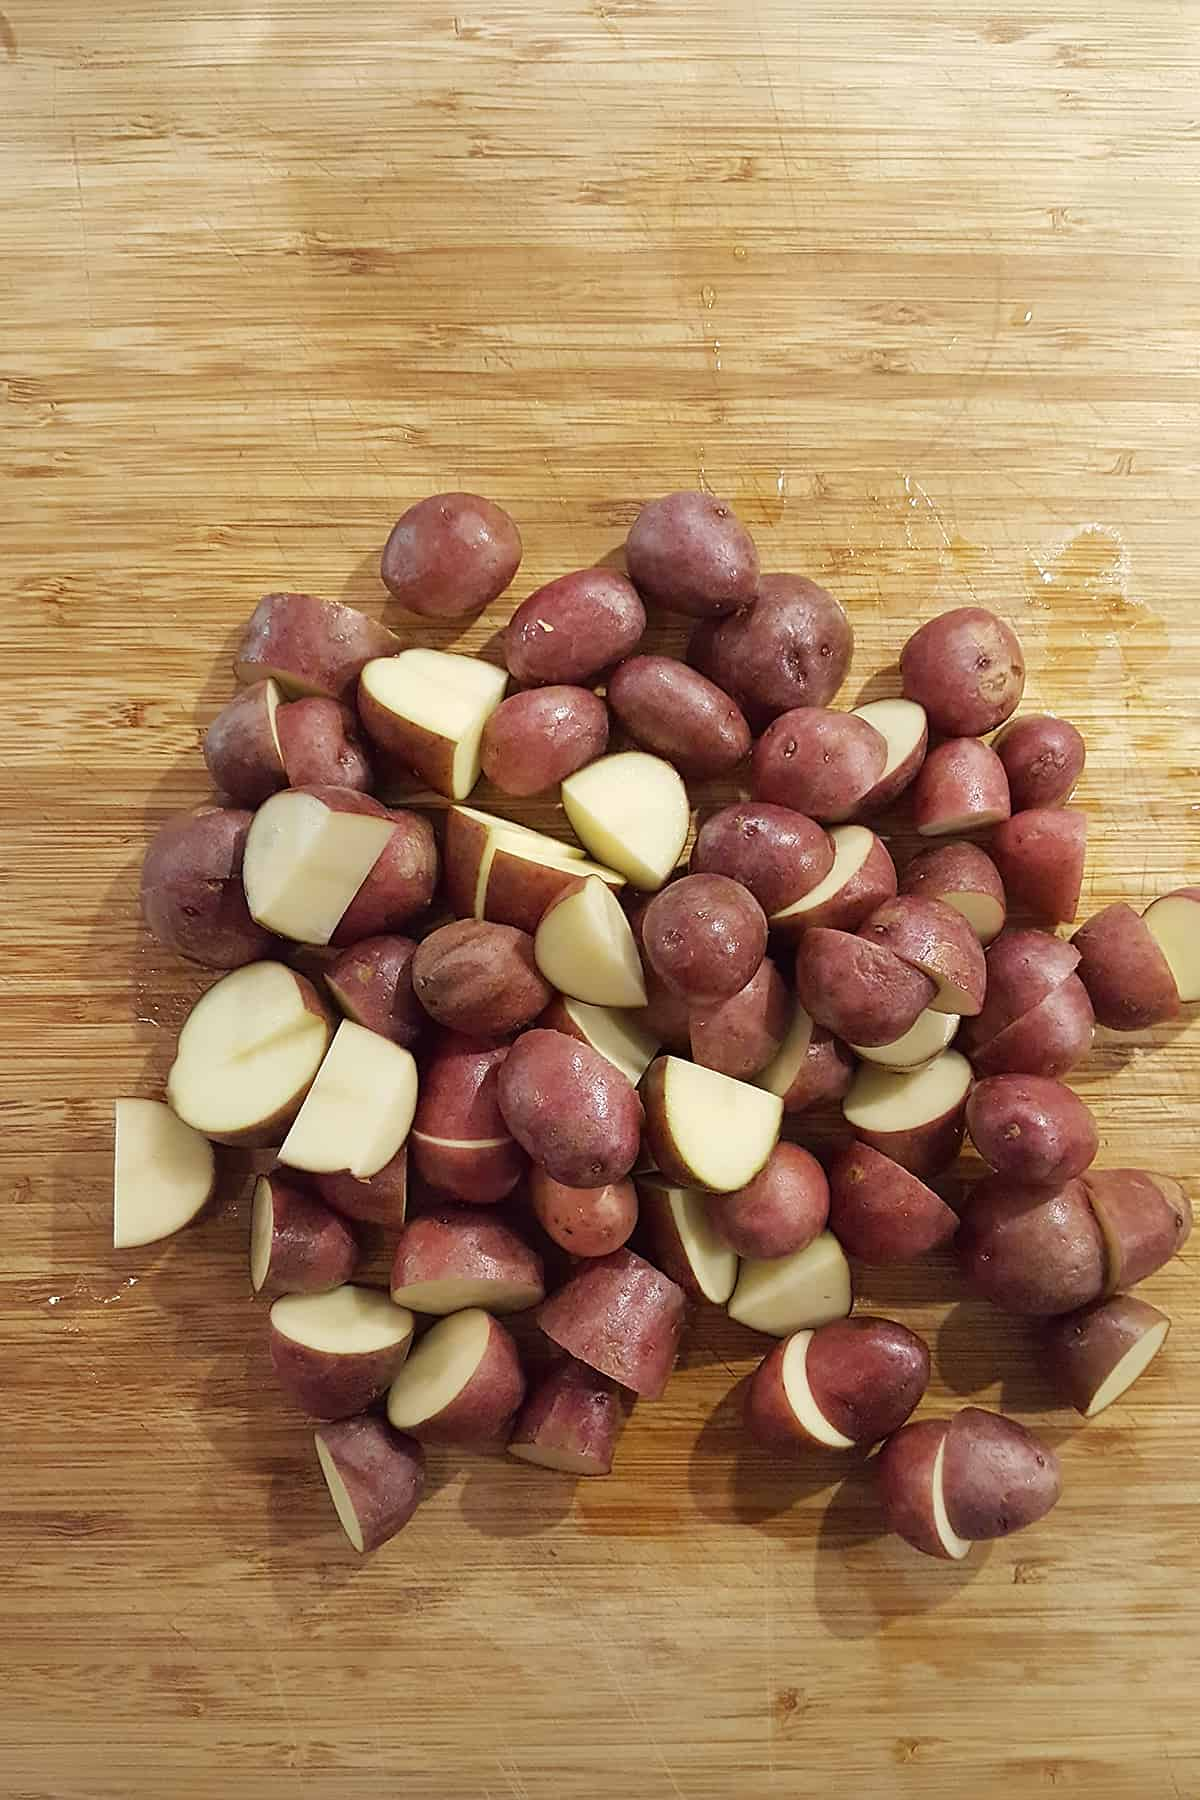 Cut the potatoes into bite-sized pieces